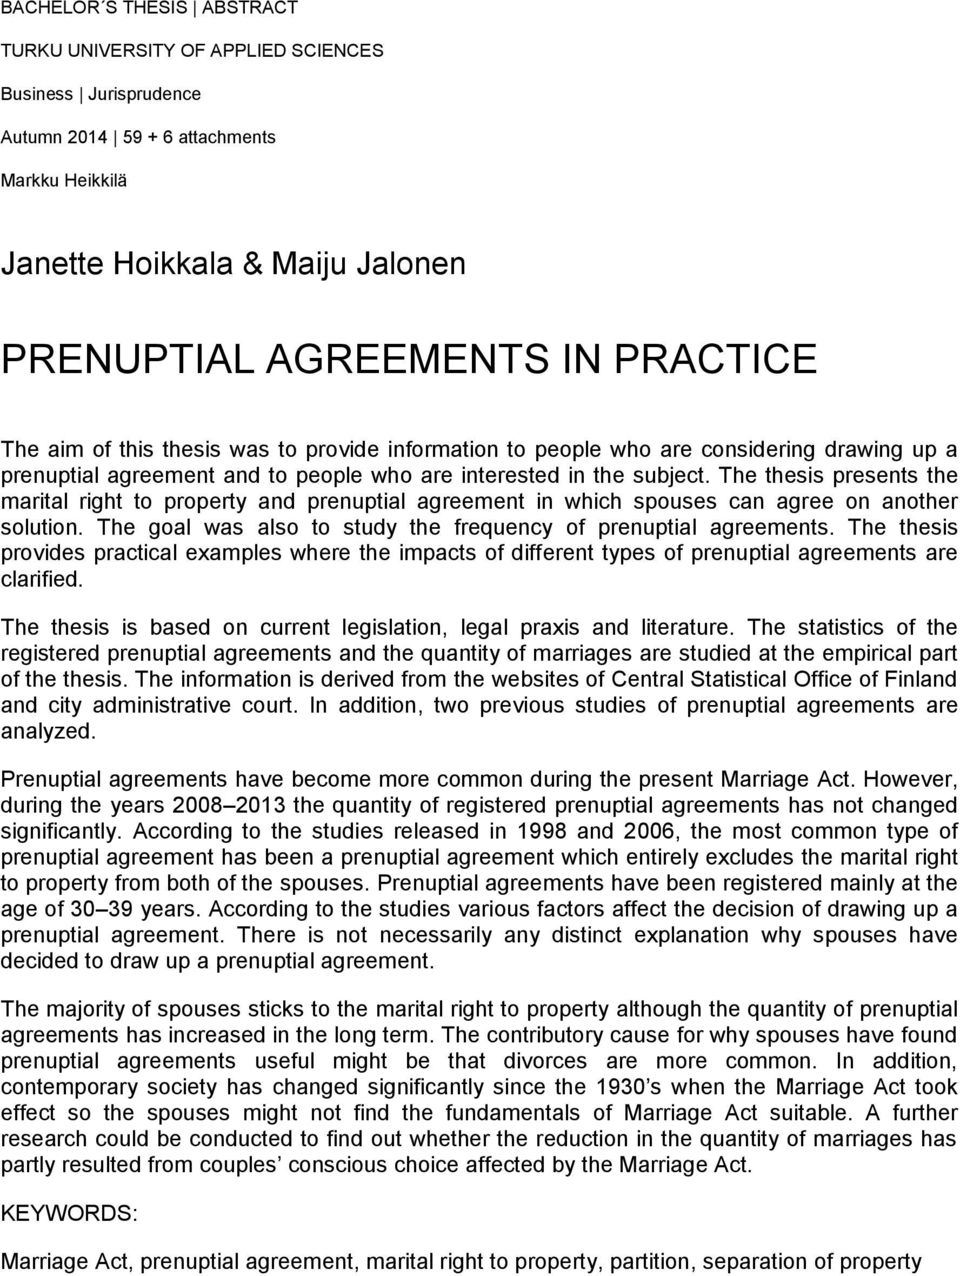 The thesis presents the marital right to property and prenuptial agreement in which spouses can agree on another solution. The goal was also to study the frequency of prenuptial agreements.